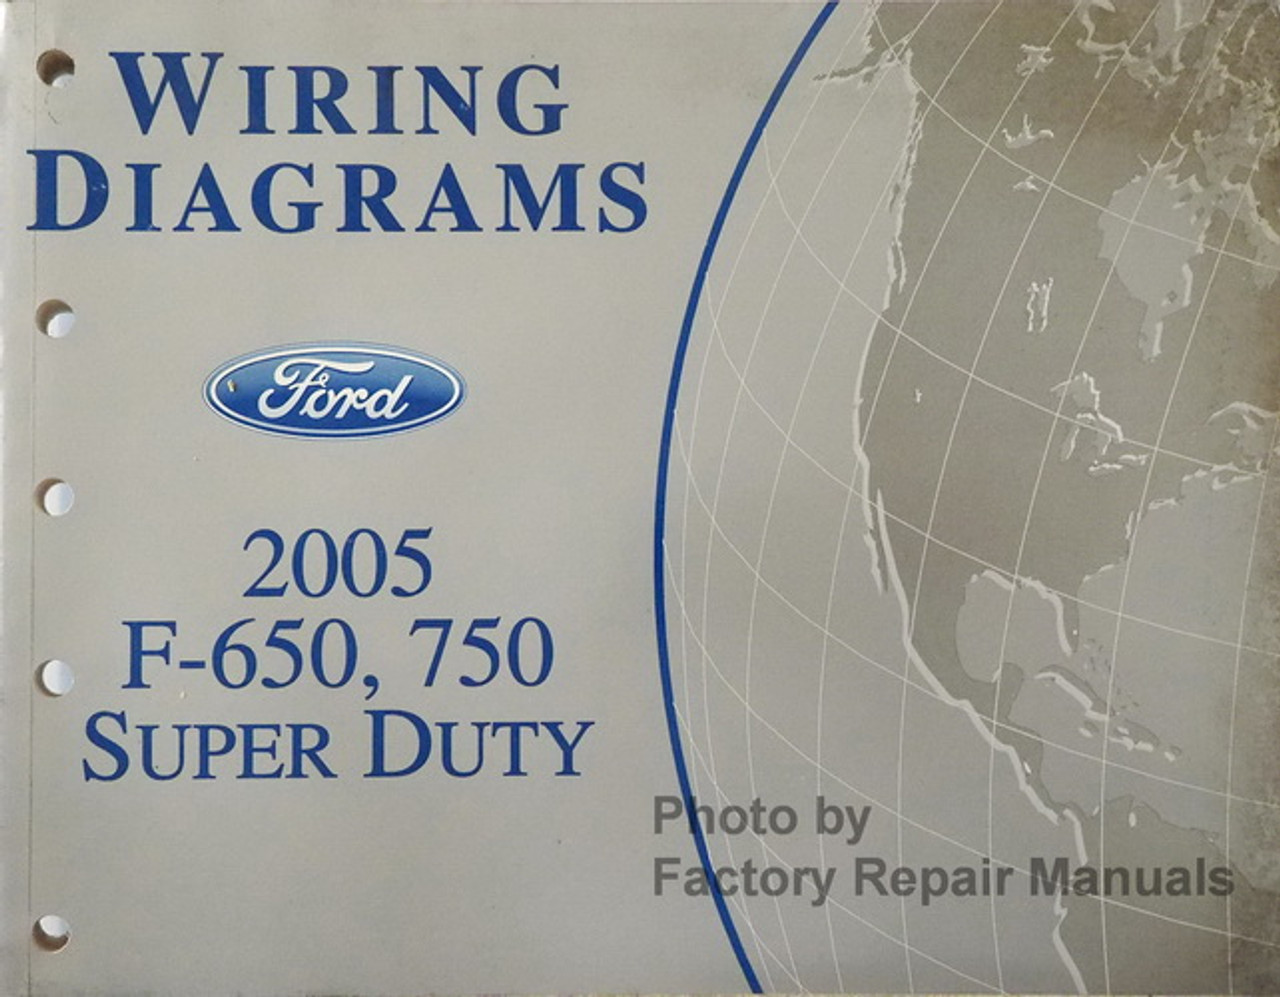 2005 Ford F650 F750 Truck Electrical Wiring Diagrams Original Manual -  Factory Repair Manuals | Ford F650 Super Duty Wire Diagram |  | Factory Repair Manuals